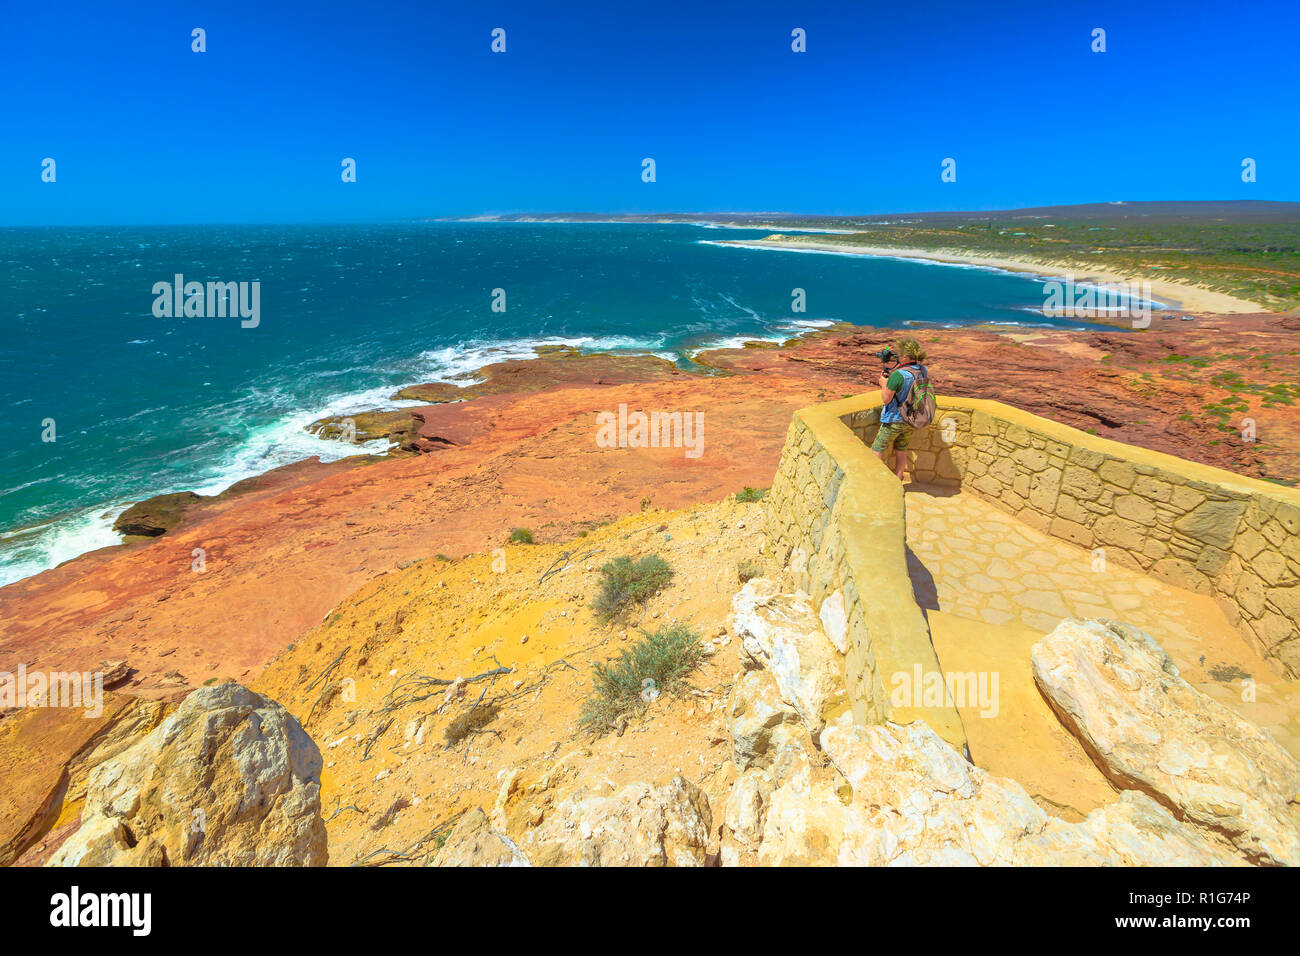 Travel photographer with stabilizer takes shot at Red Bluff lookout, Kalbarri National Park, Western Australia. Professional videomaker takes photo of Australian Coral Coast on Indian Ocean.Copy space - Stock Image